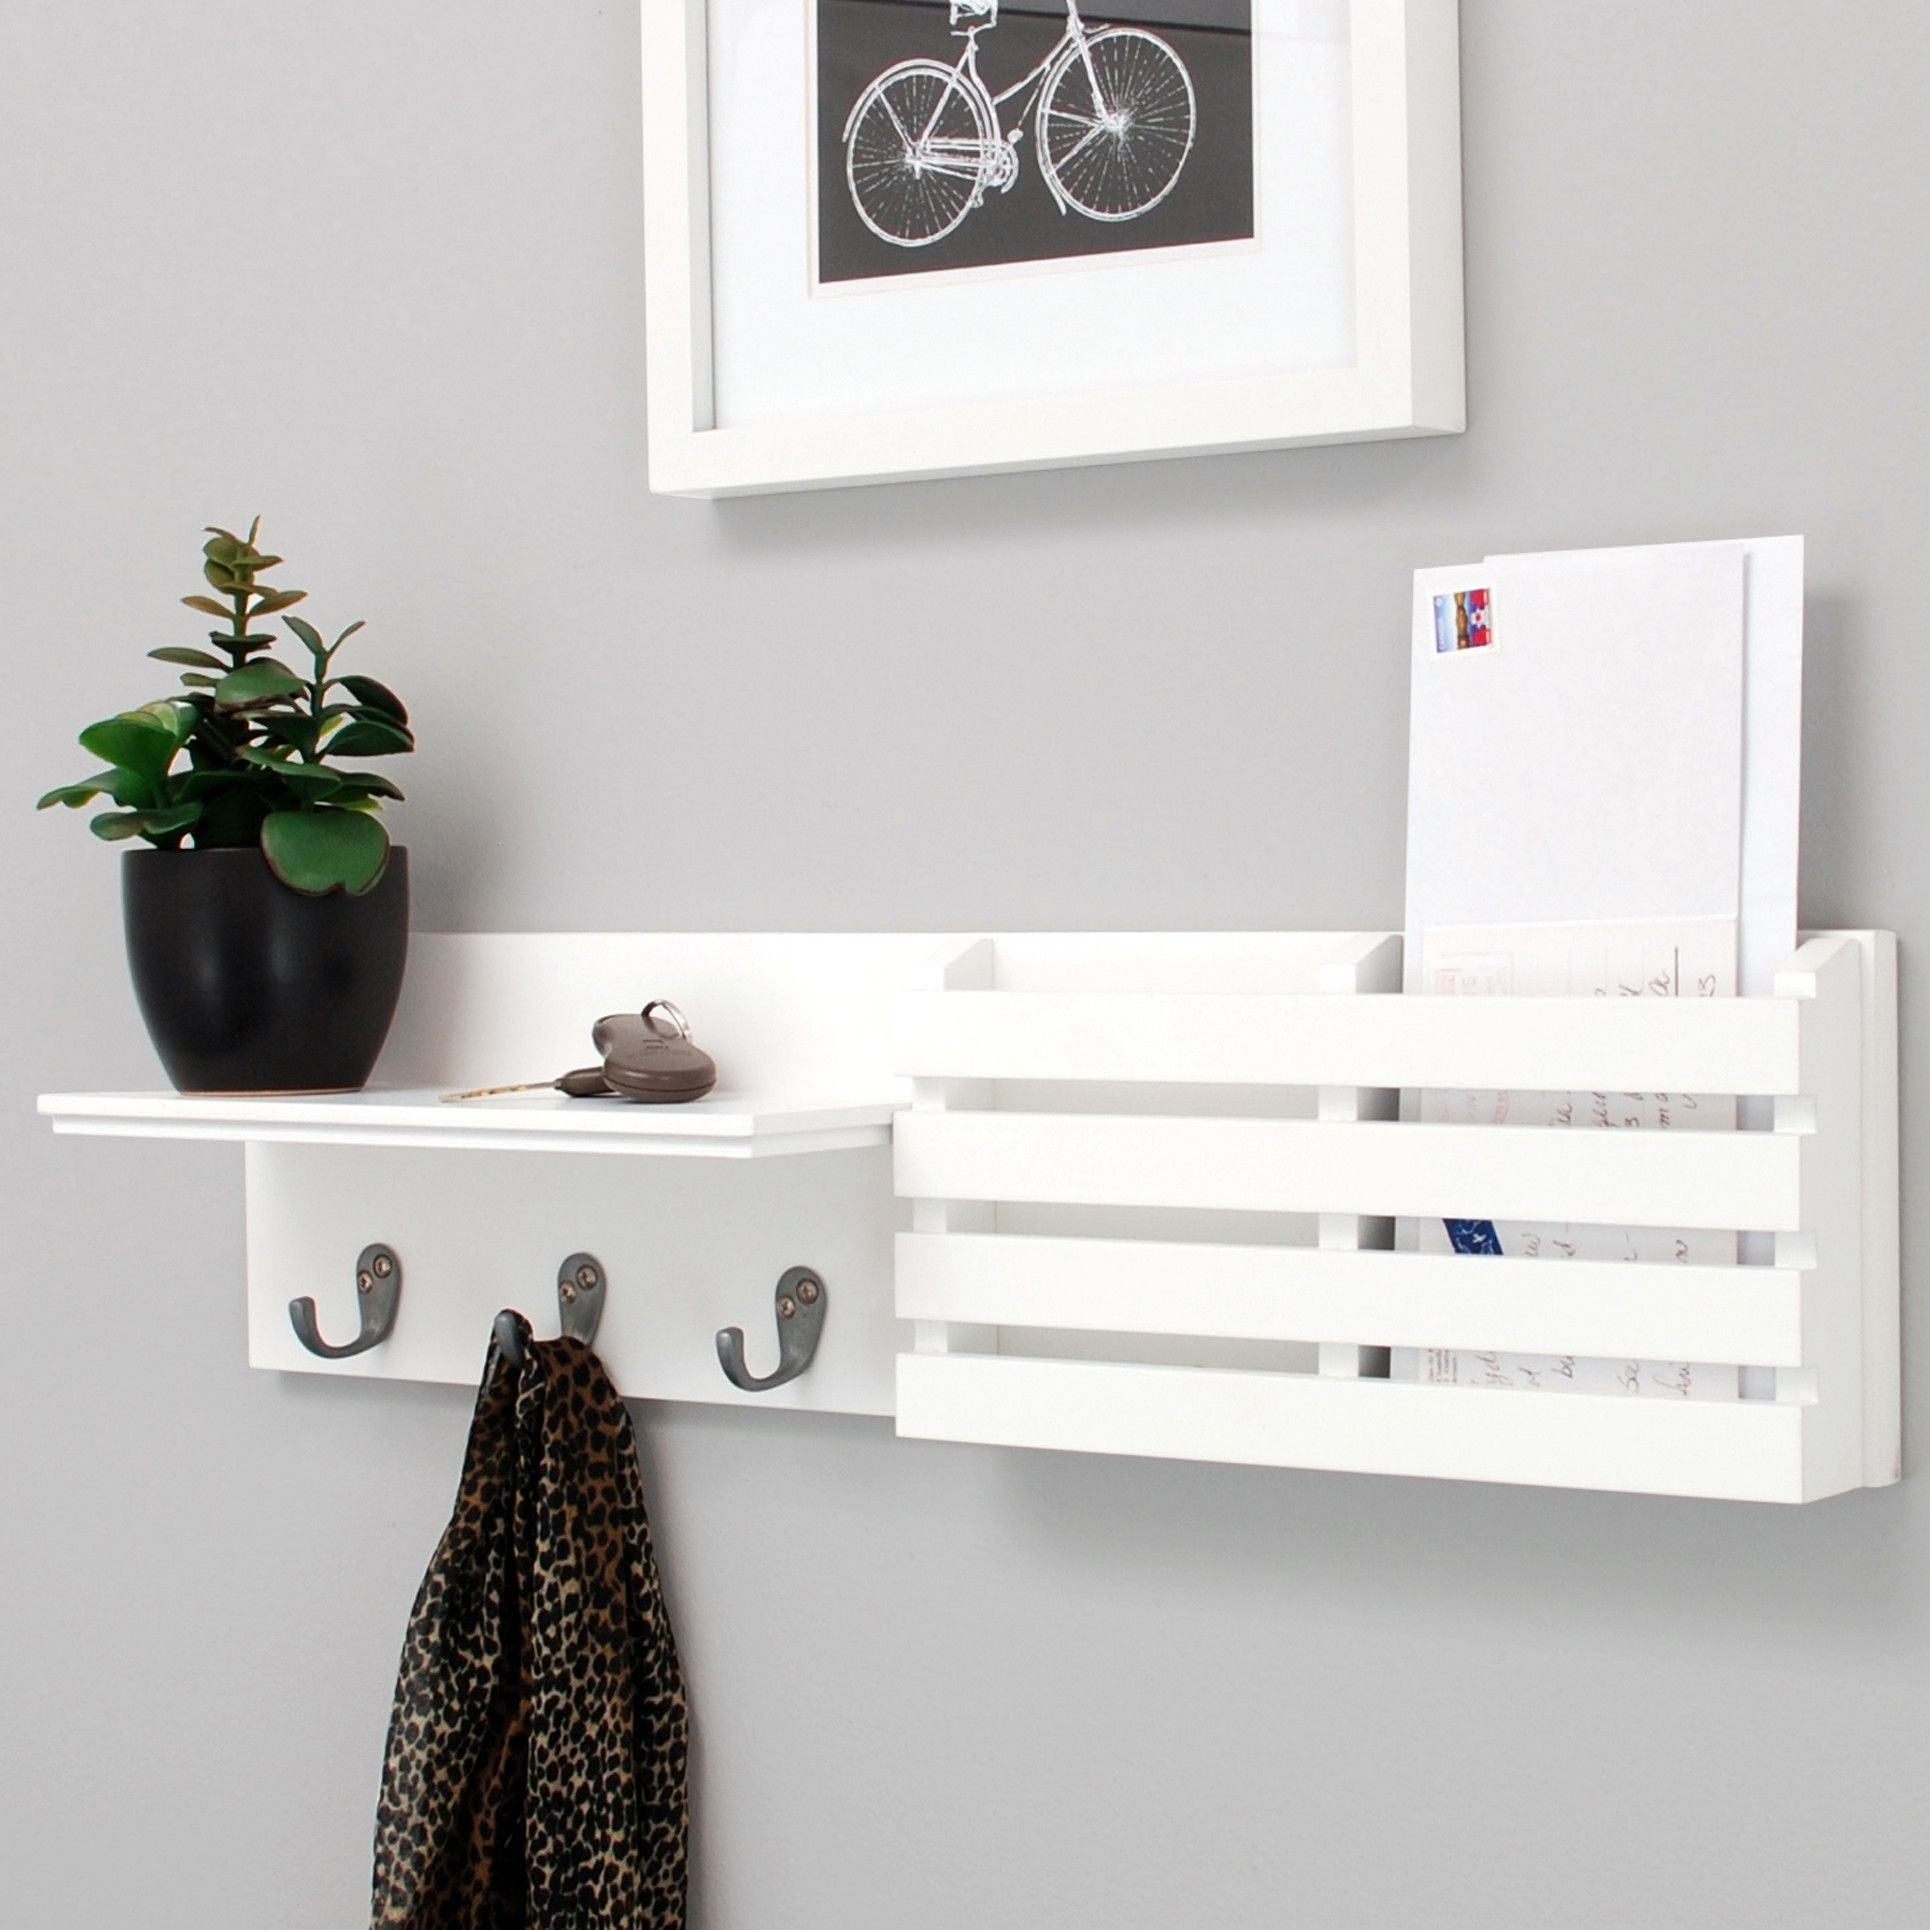 Found It At Allmodern Sydney Wall Shelf And Mail Holder With 3 Metal Hooks